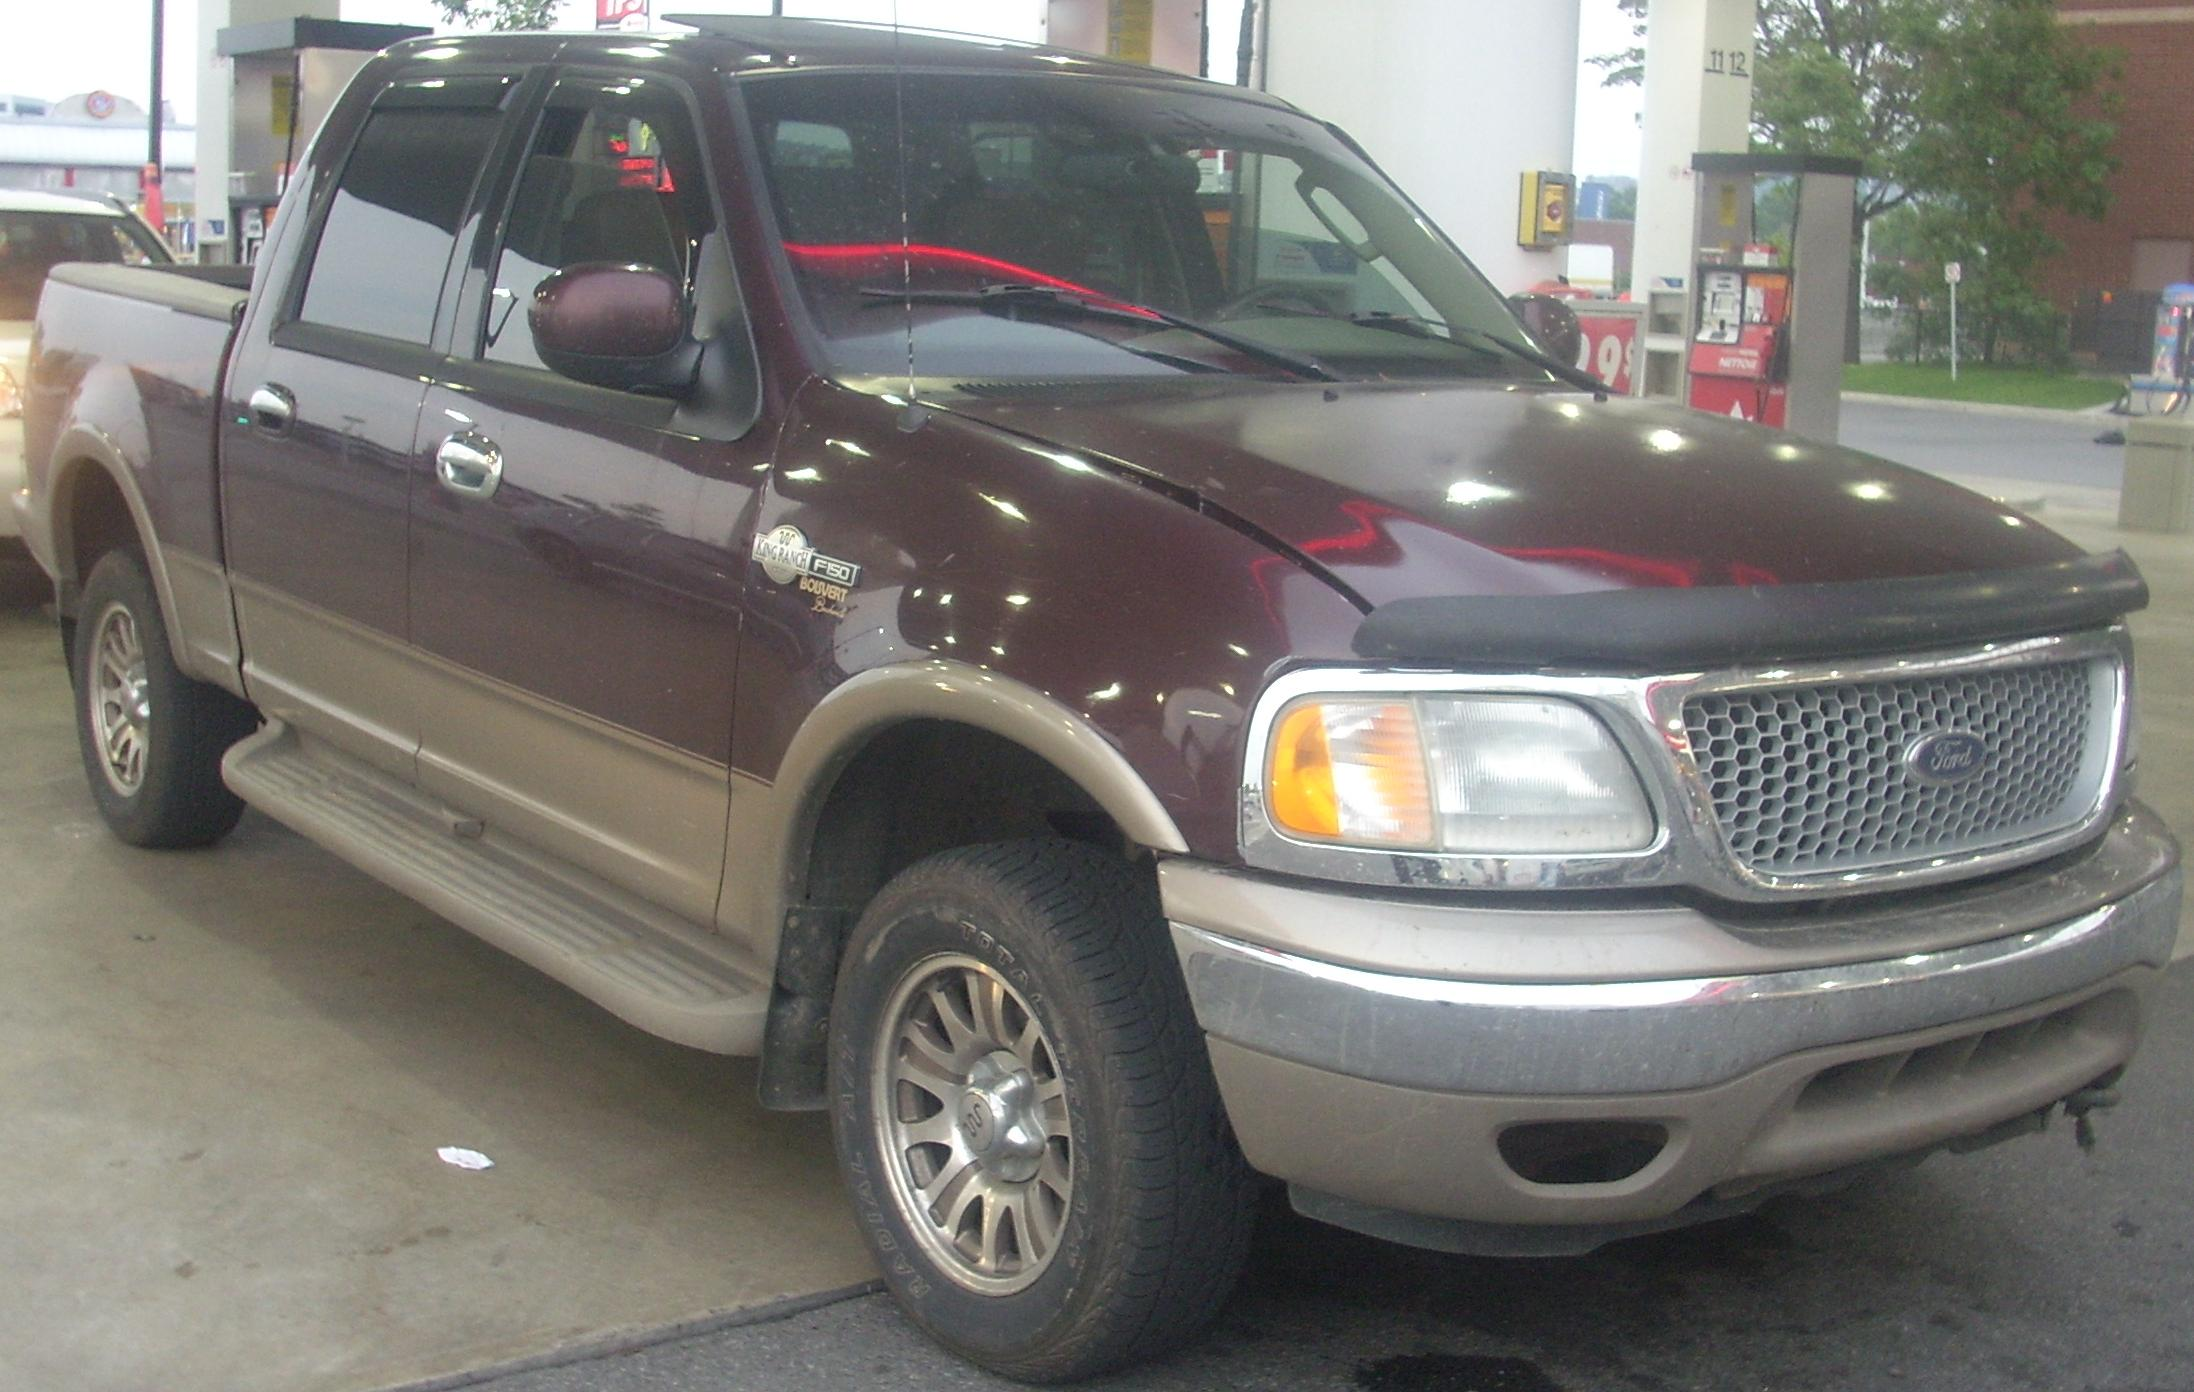 DK5 in addition Fulton further 5752001 as well Nueva Ford F 150 Limited La Pick Up Mas Lujosa together with File '01 '03 Ford F 150 King Ranch. on 2001 ford f 150